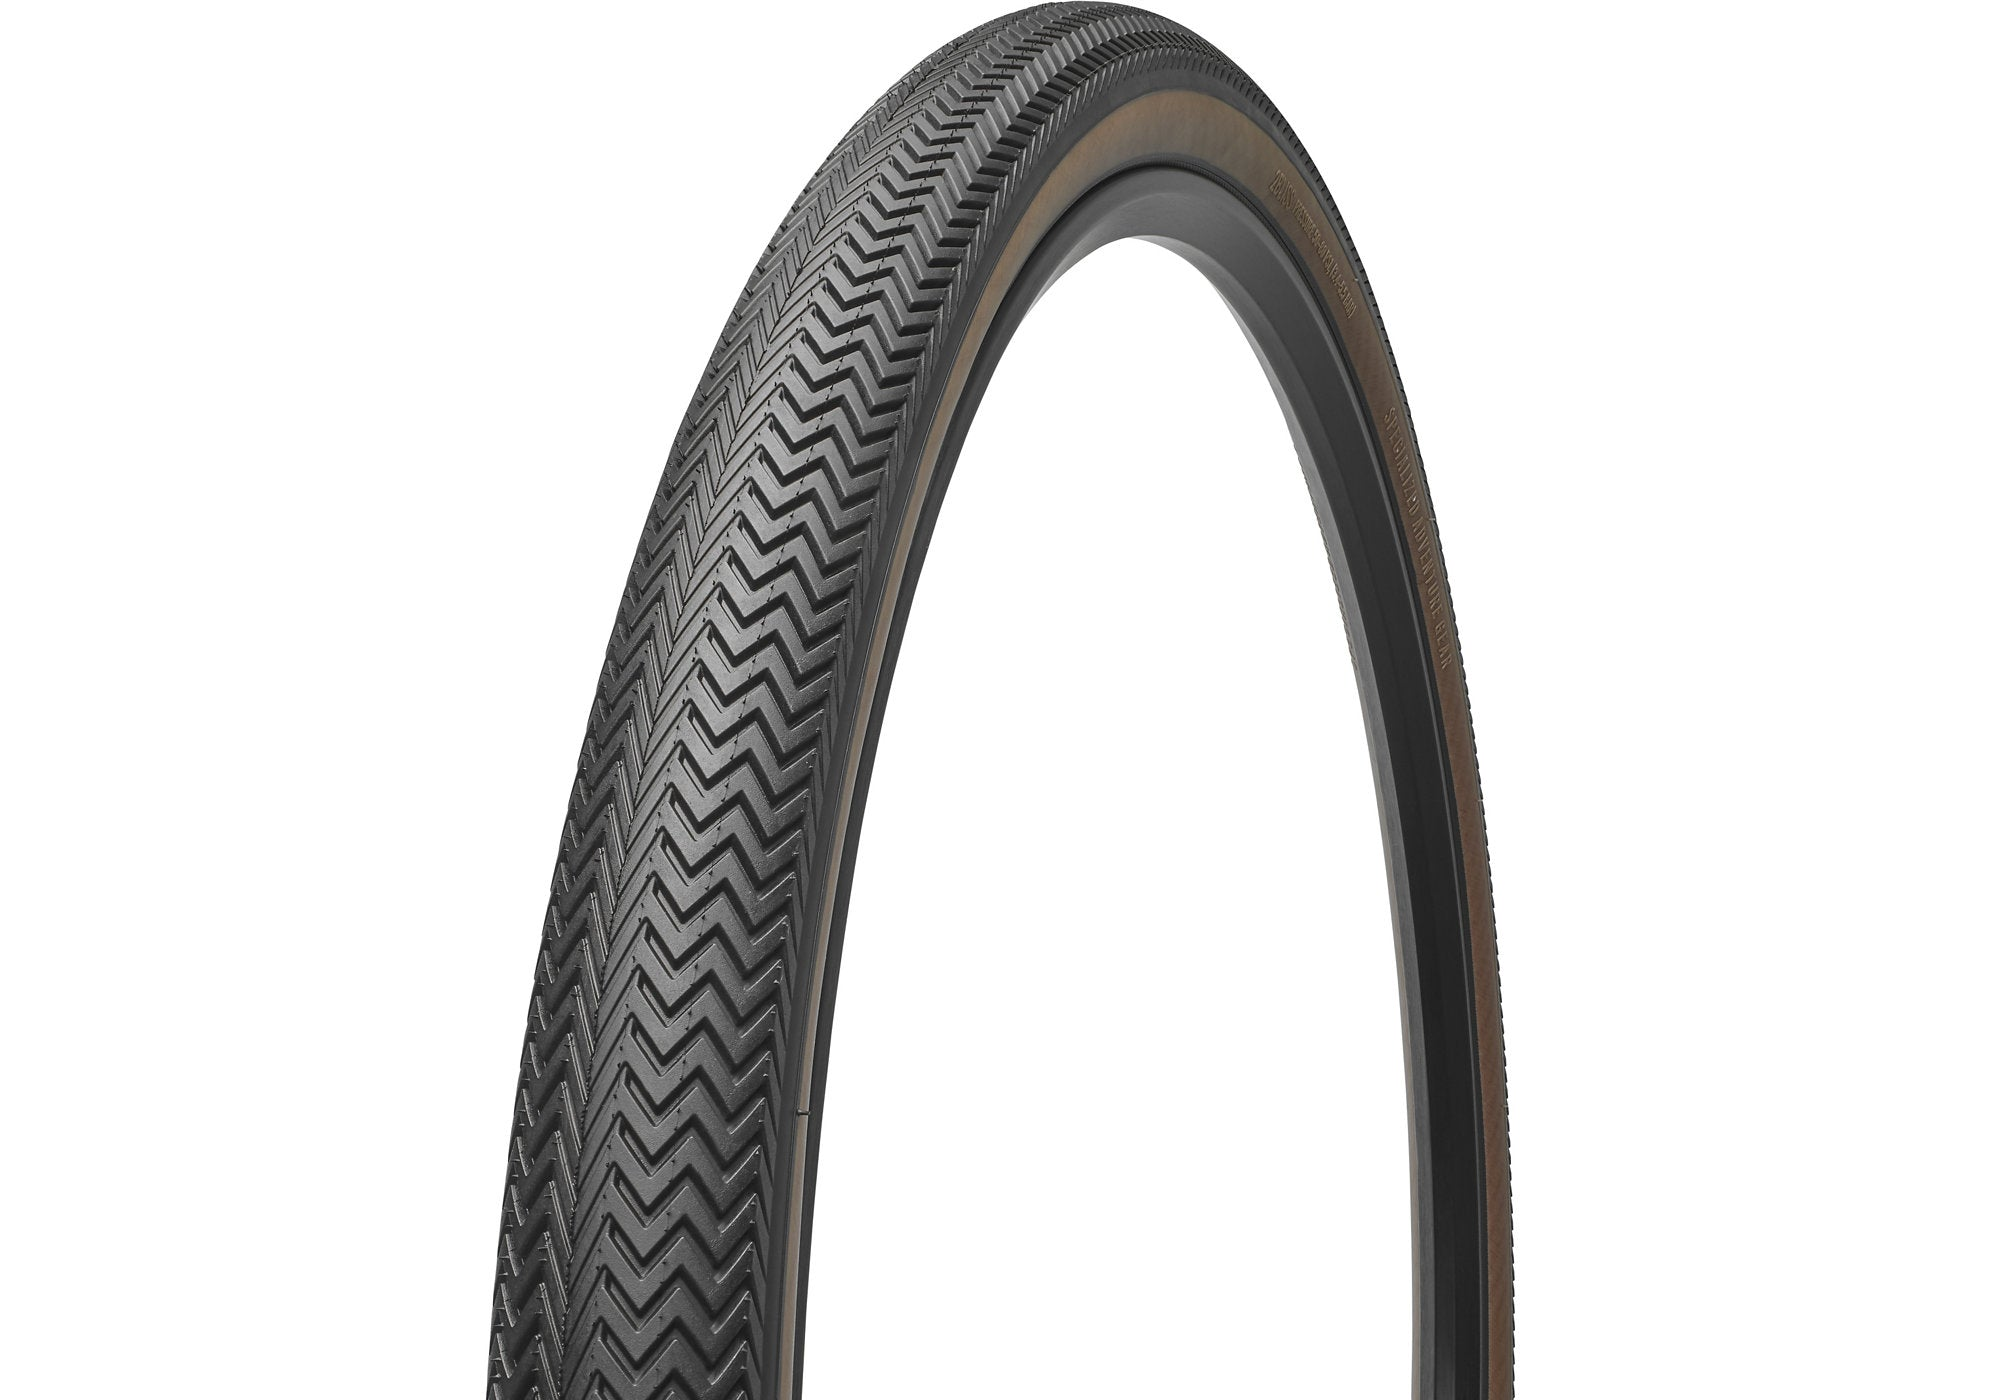 Specialized Sawtooth Road Tyre 700x42C Transparent Sidewall